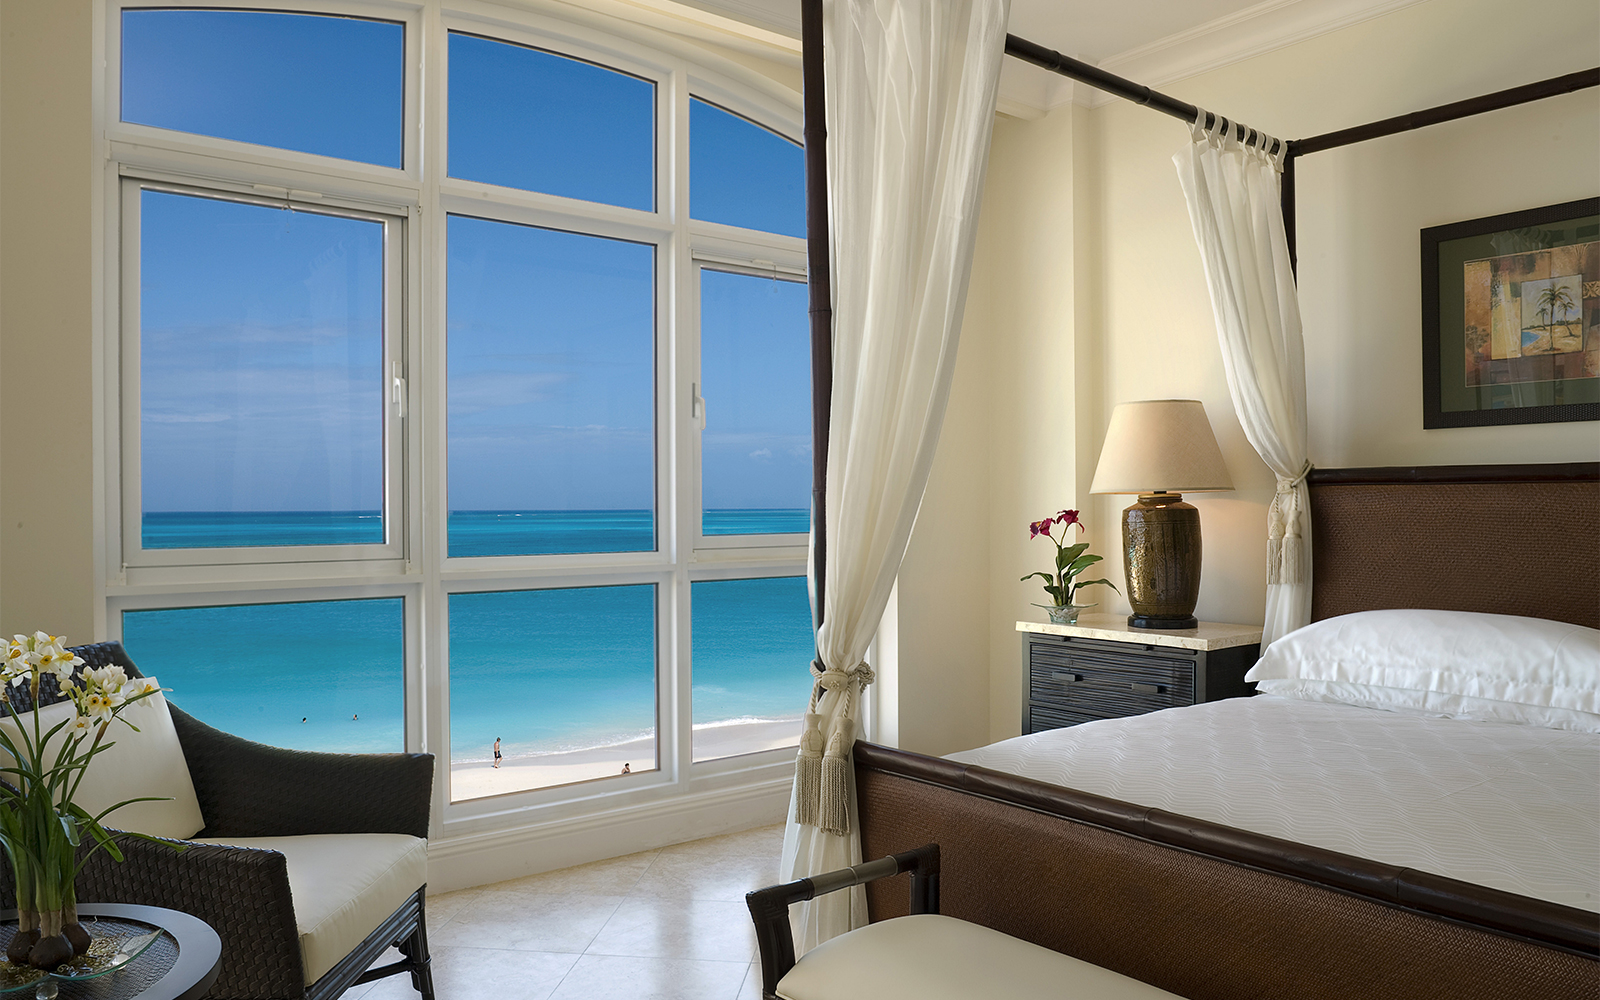 World's Best Beach Hotels: No. 17 Seven Stars Resort, Turks and Caicos